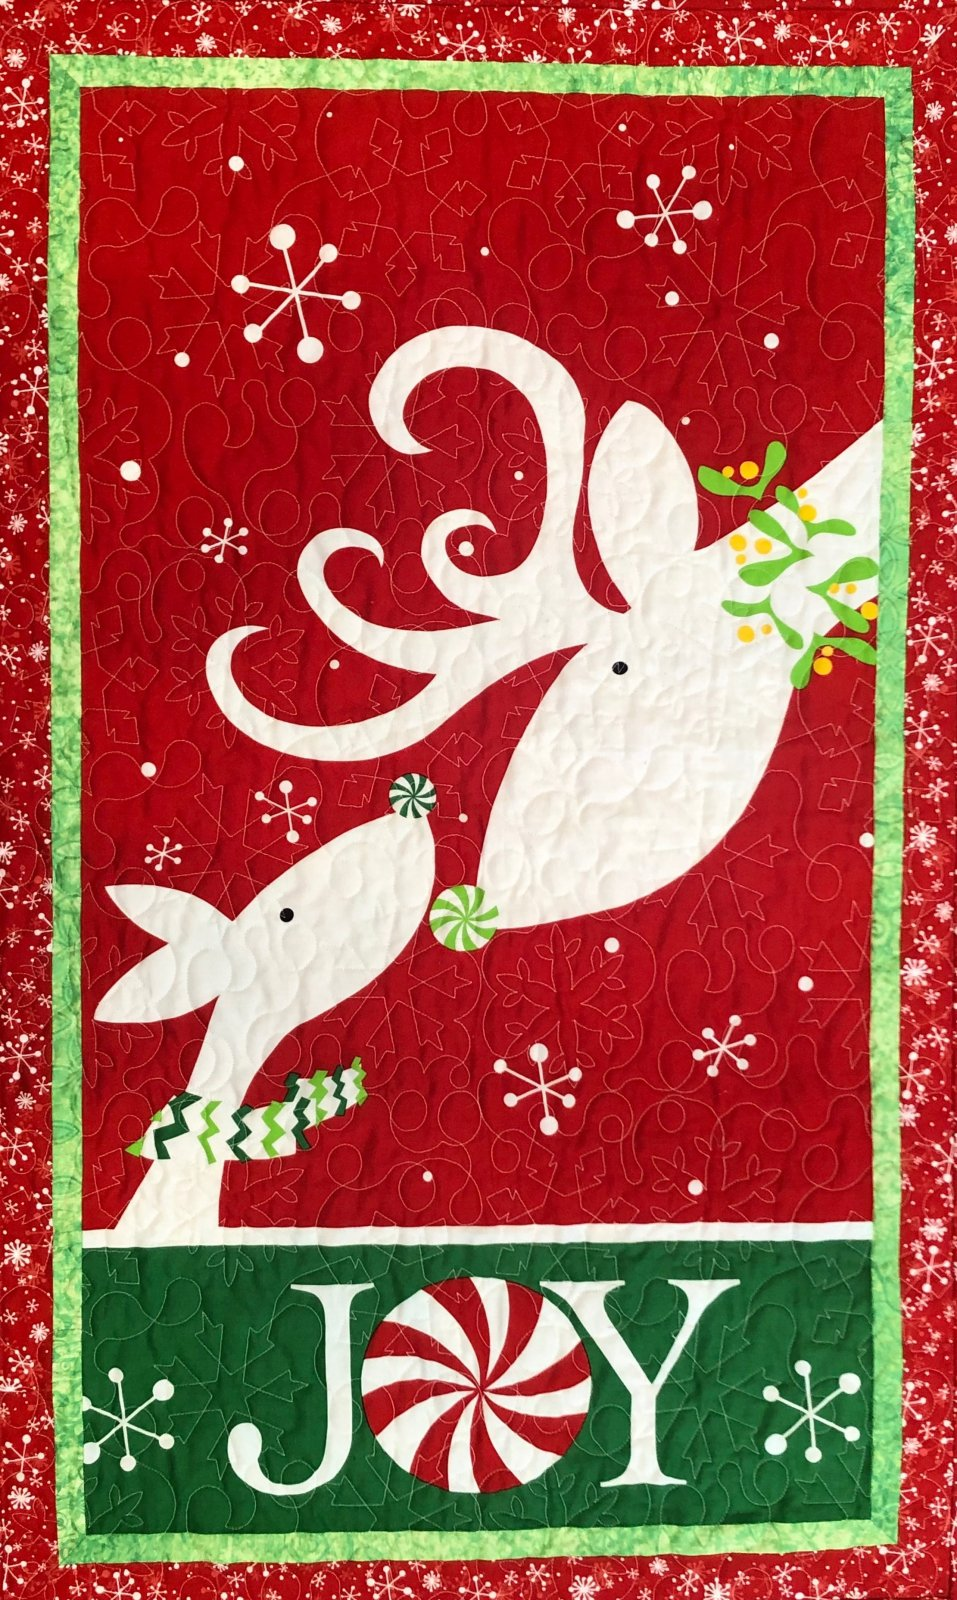 Peppermint Reindeer Wall Hanging Kit - 28 x 44